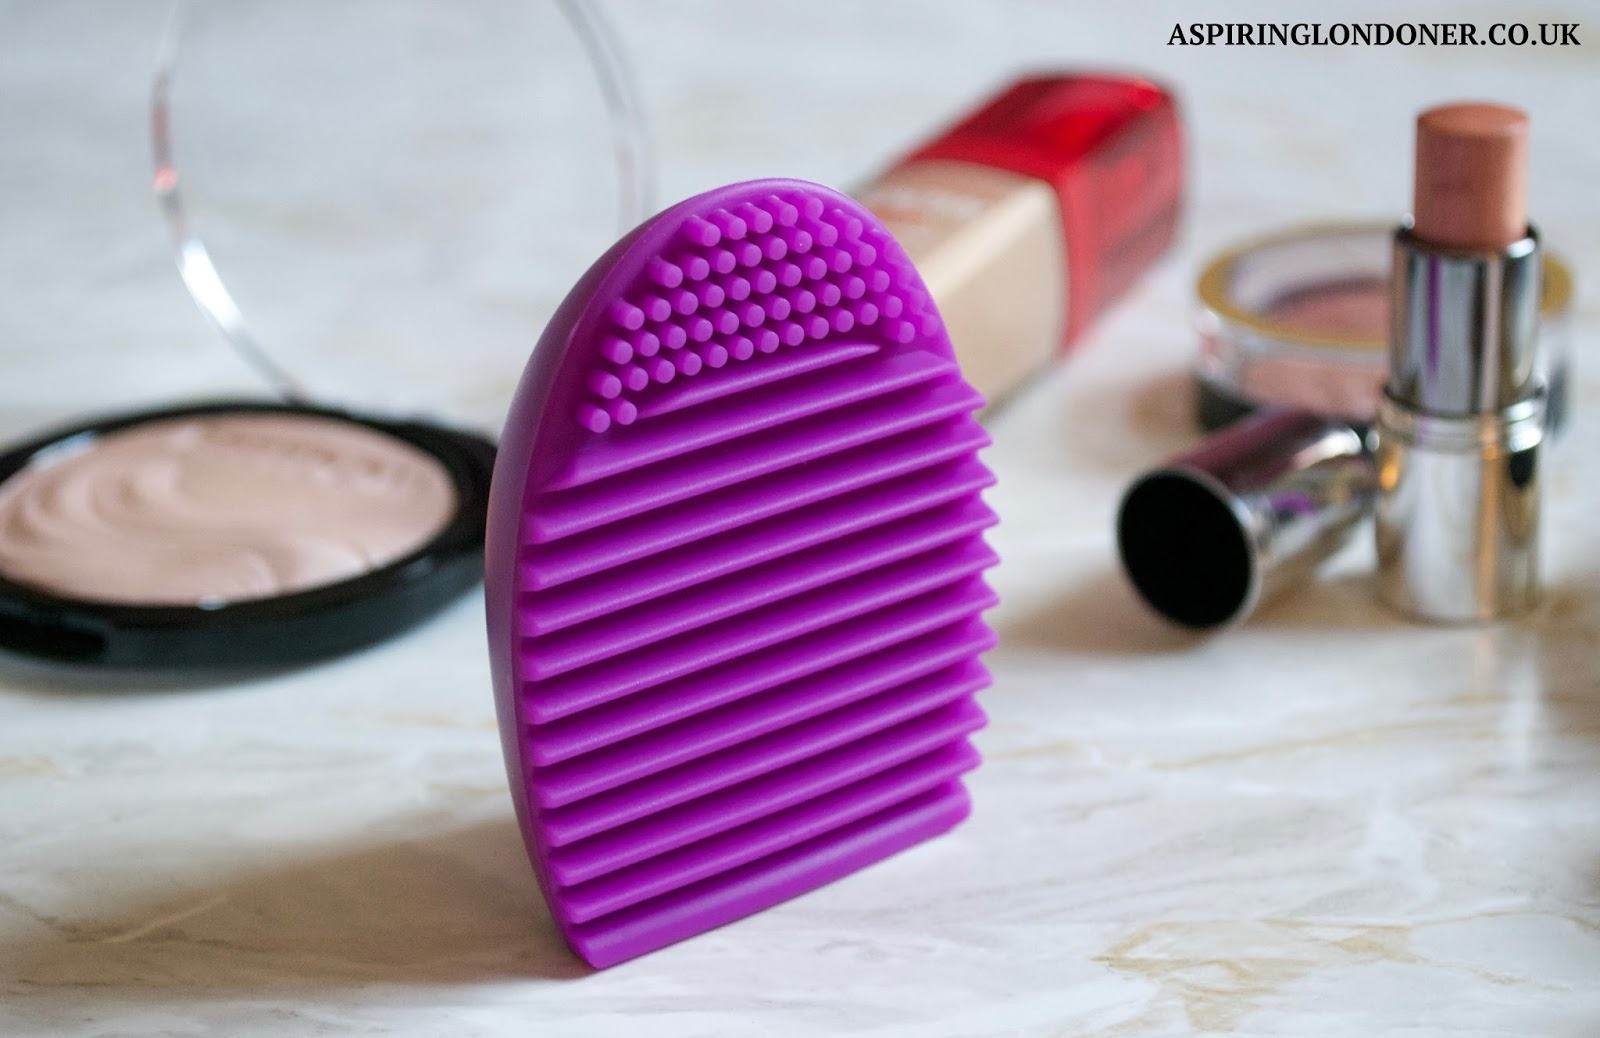 Makeup Revolution Pro Cleanse Brush Tool Review - Aspiring Londoner